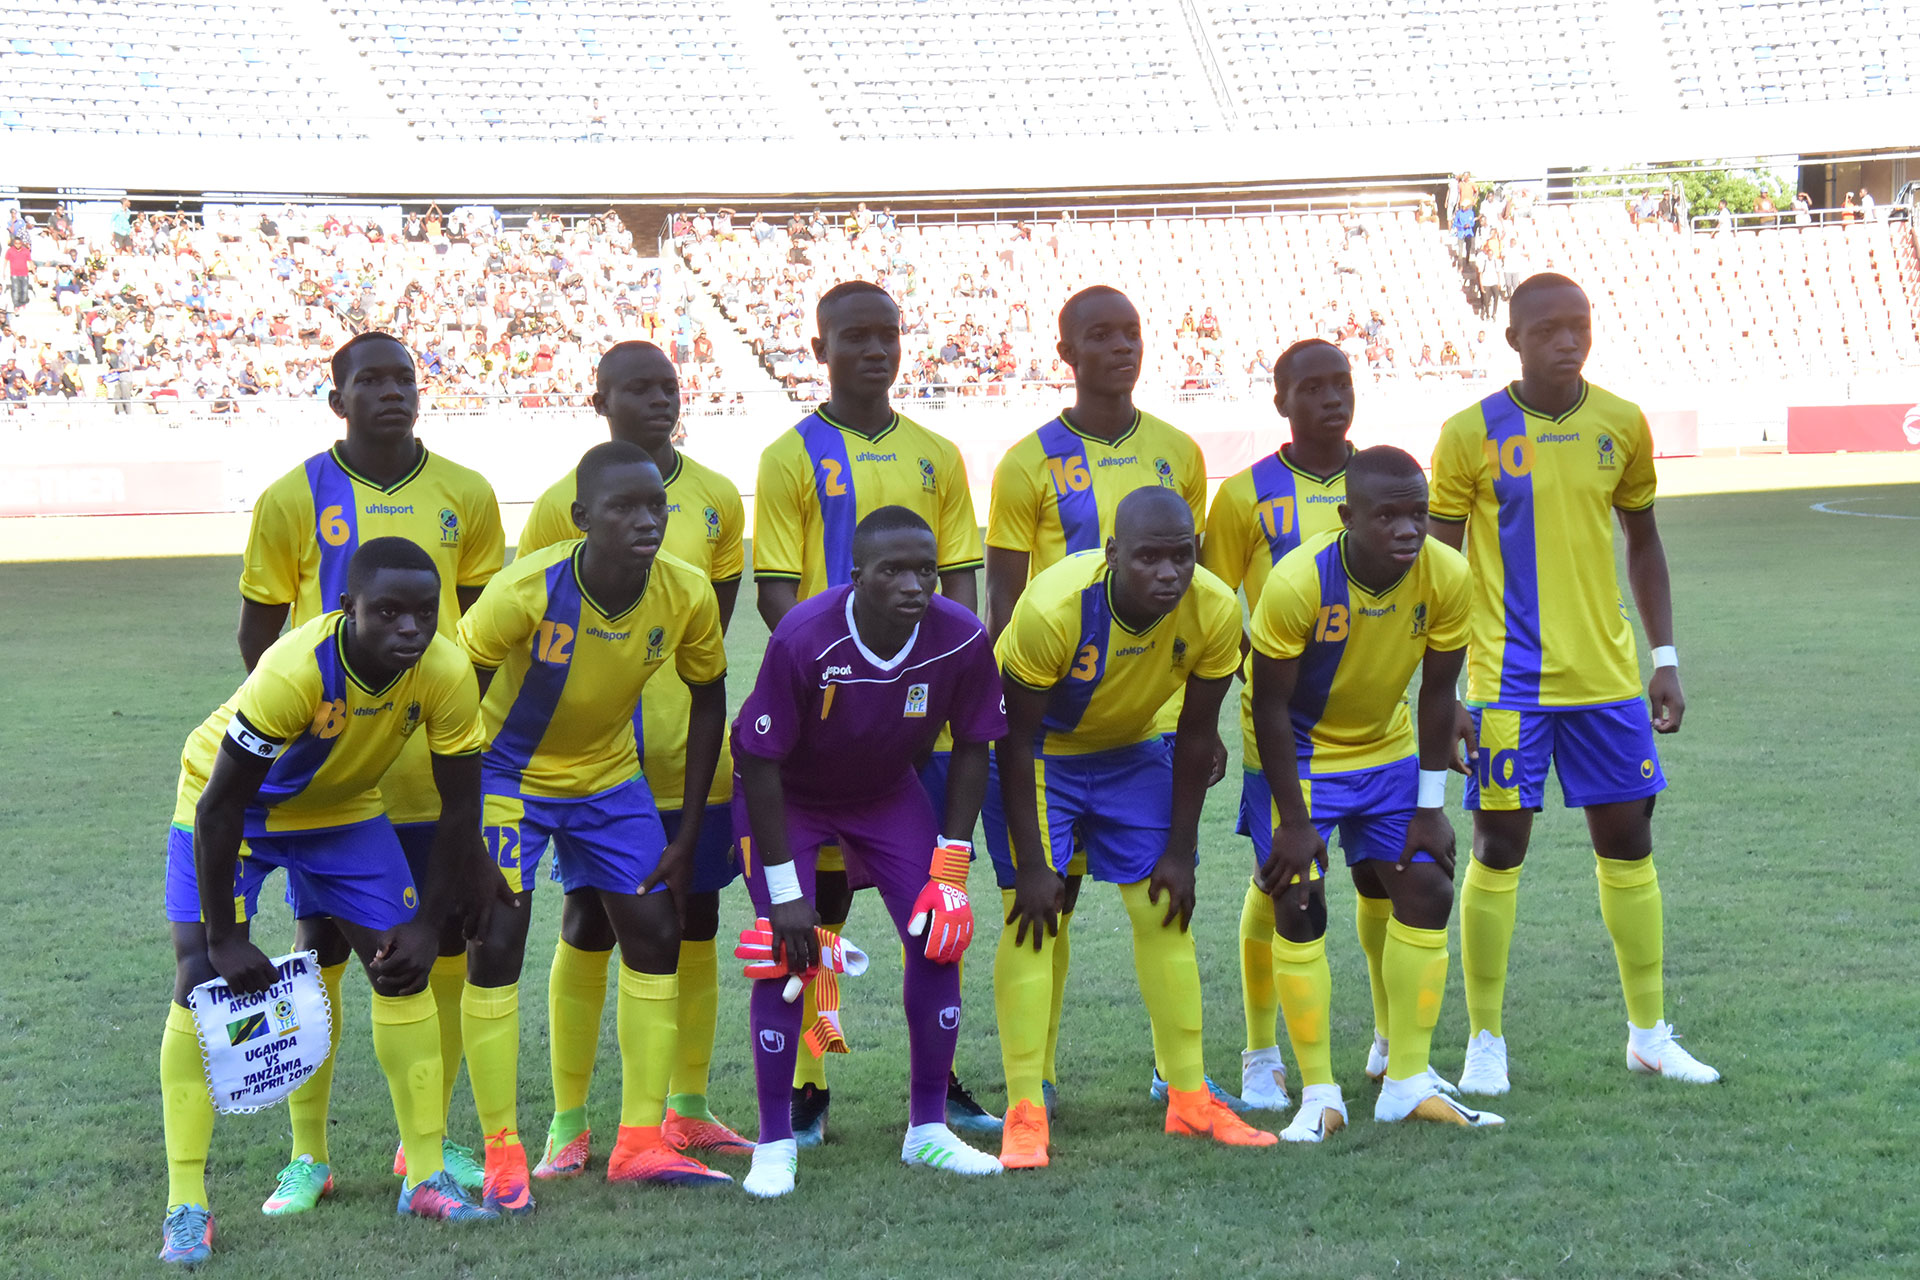 Hopes dashed ... after losing 0-3 to Uganda at the National Stadium on Wednesday, Serengeti Boys of Tanzania will not be going to the 2010 U17 FIFA World Cup